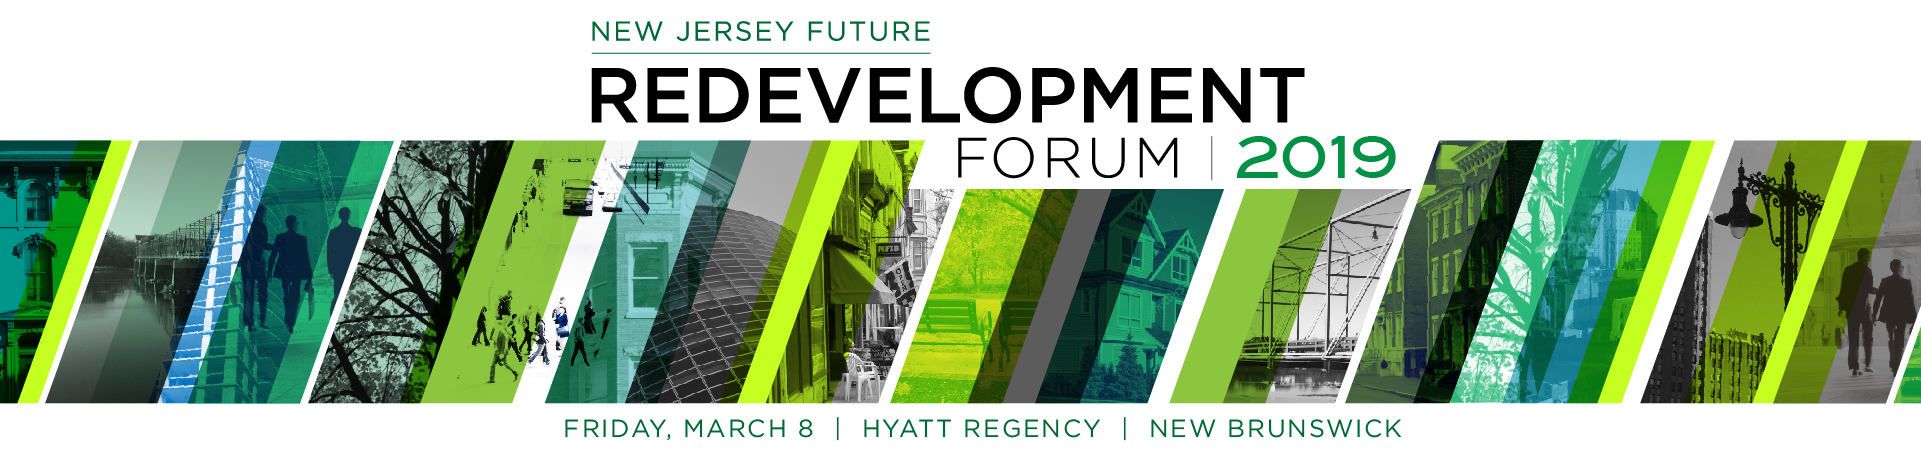 Redevelopment Forum 2019